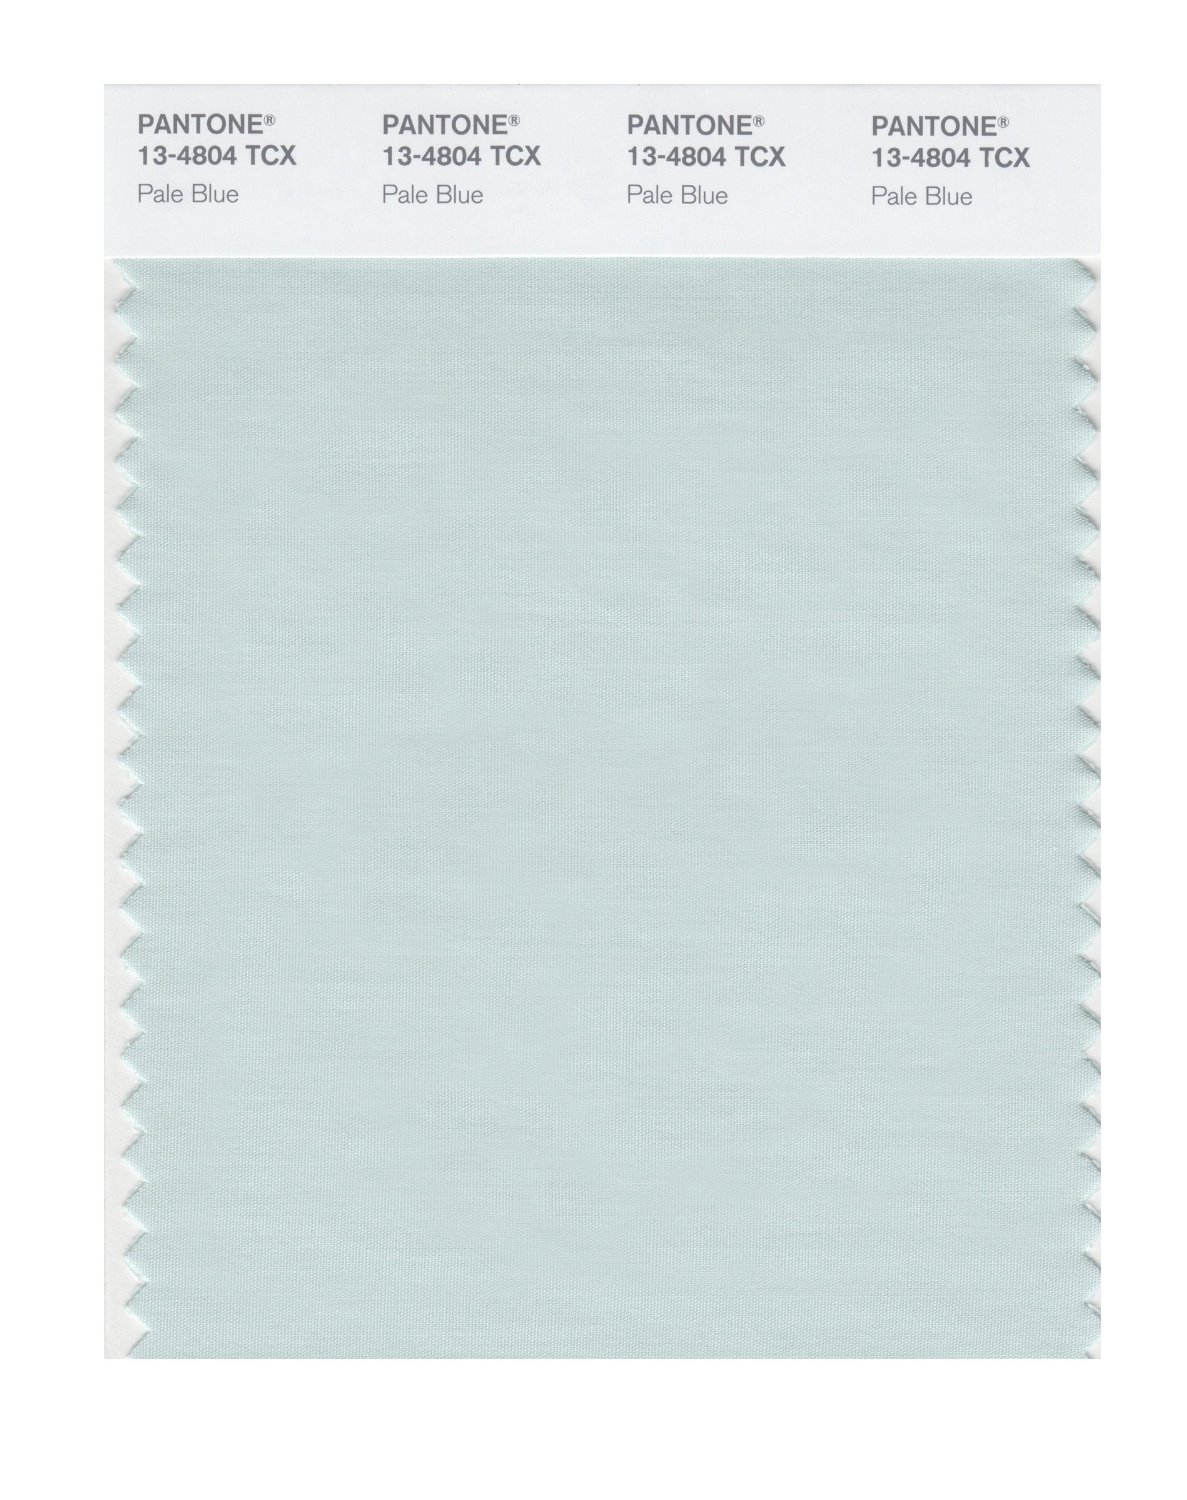 Pantone Smart Swatch 13-4804 Pale Blue